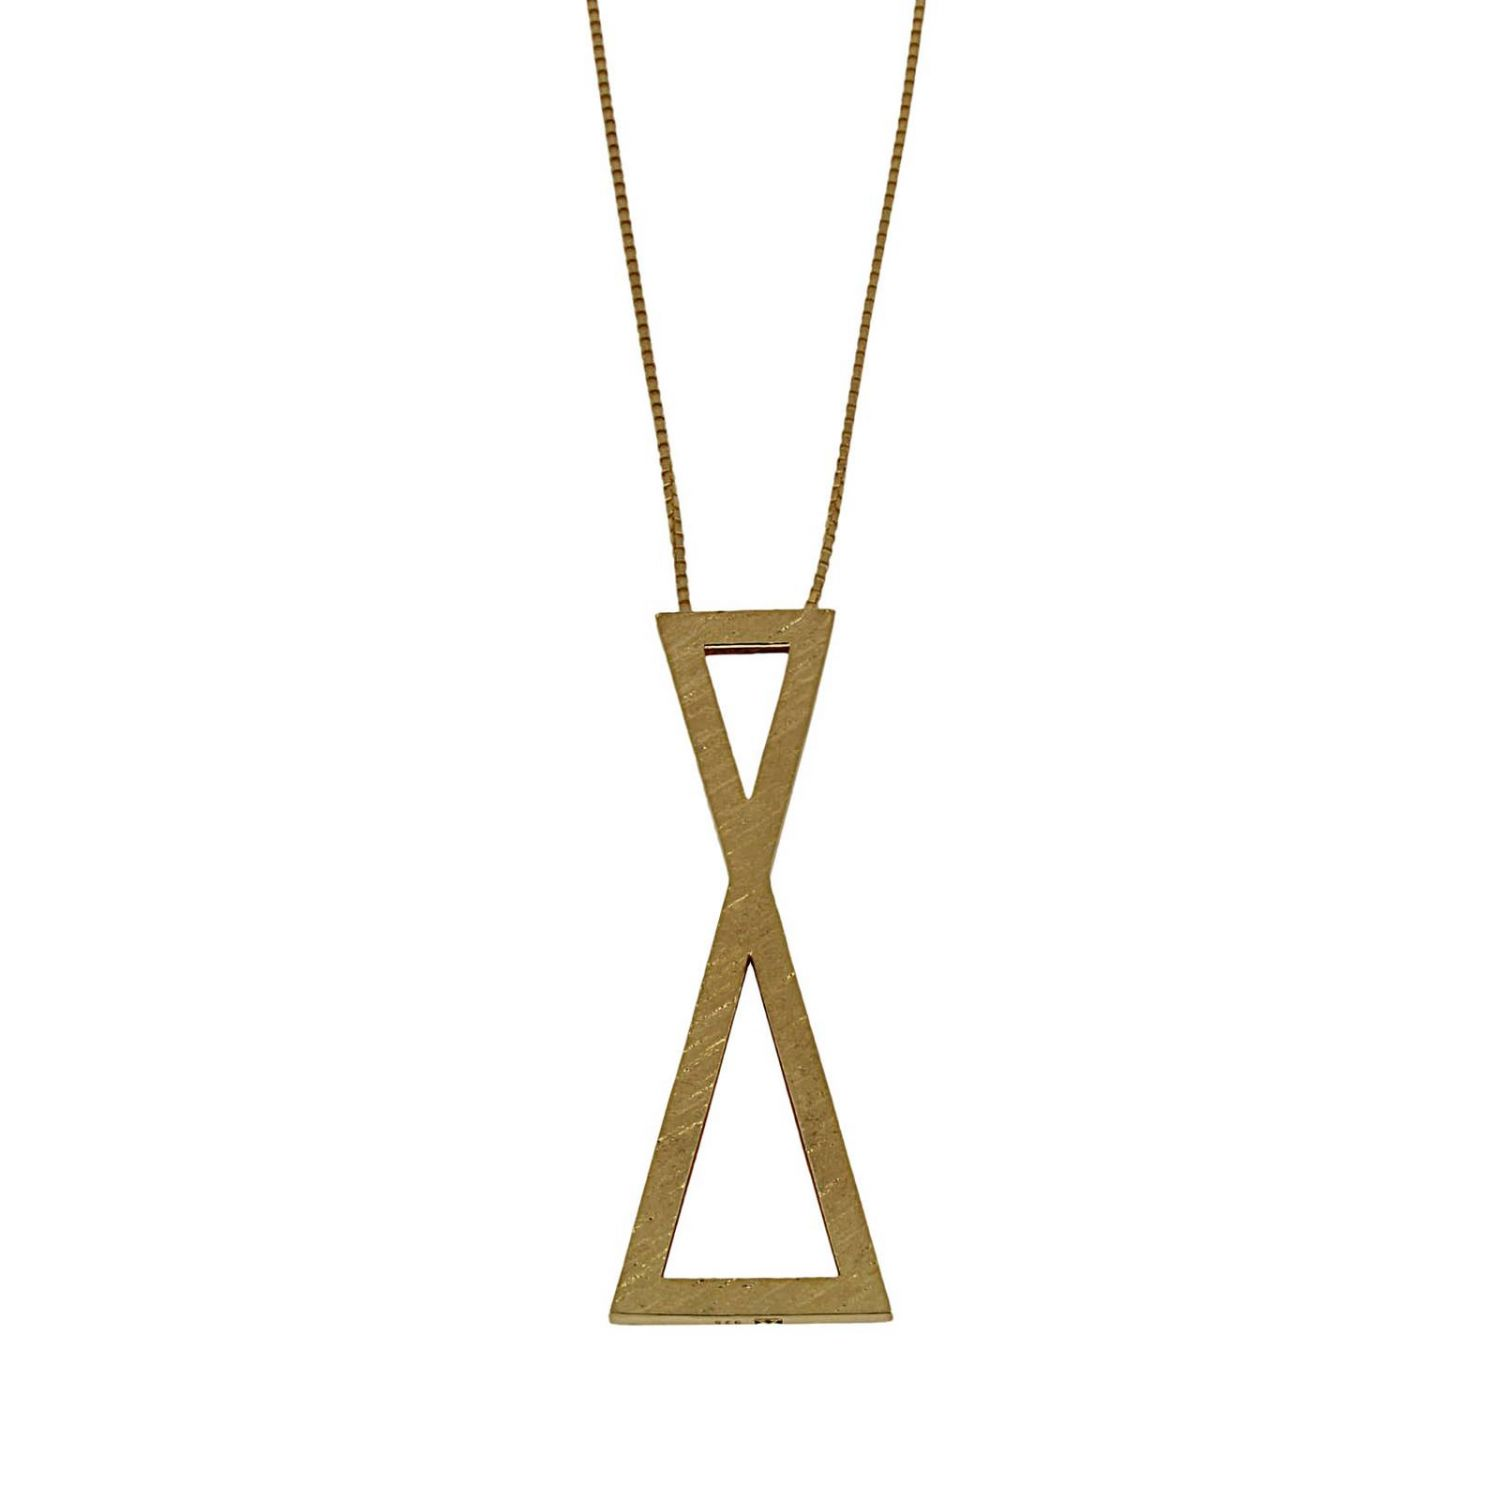 Collana Big clepsydra pendant in argento 925 Linear Collection oro 1